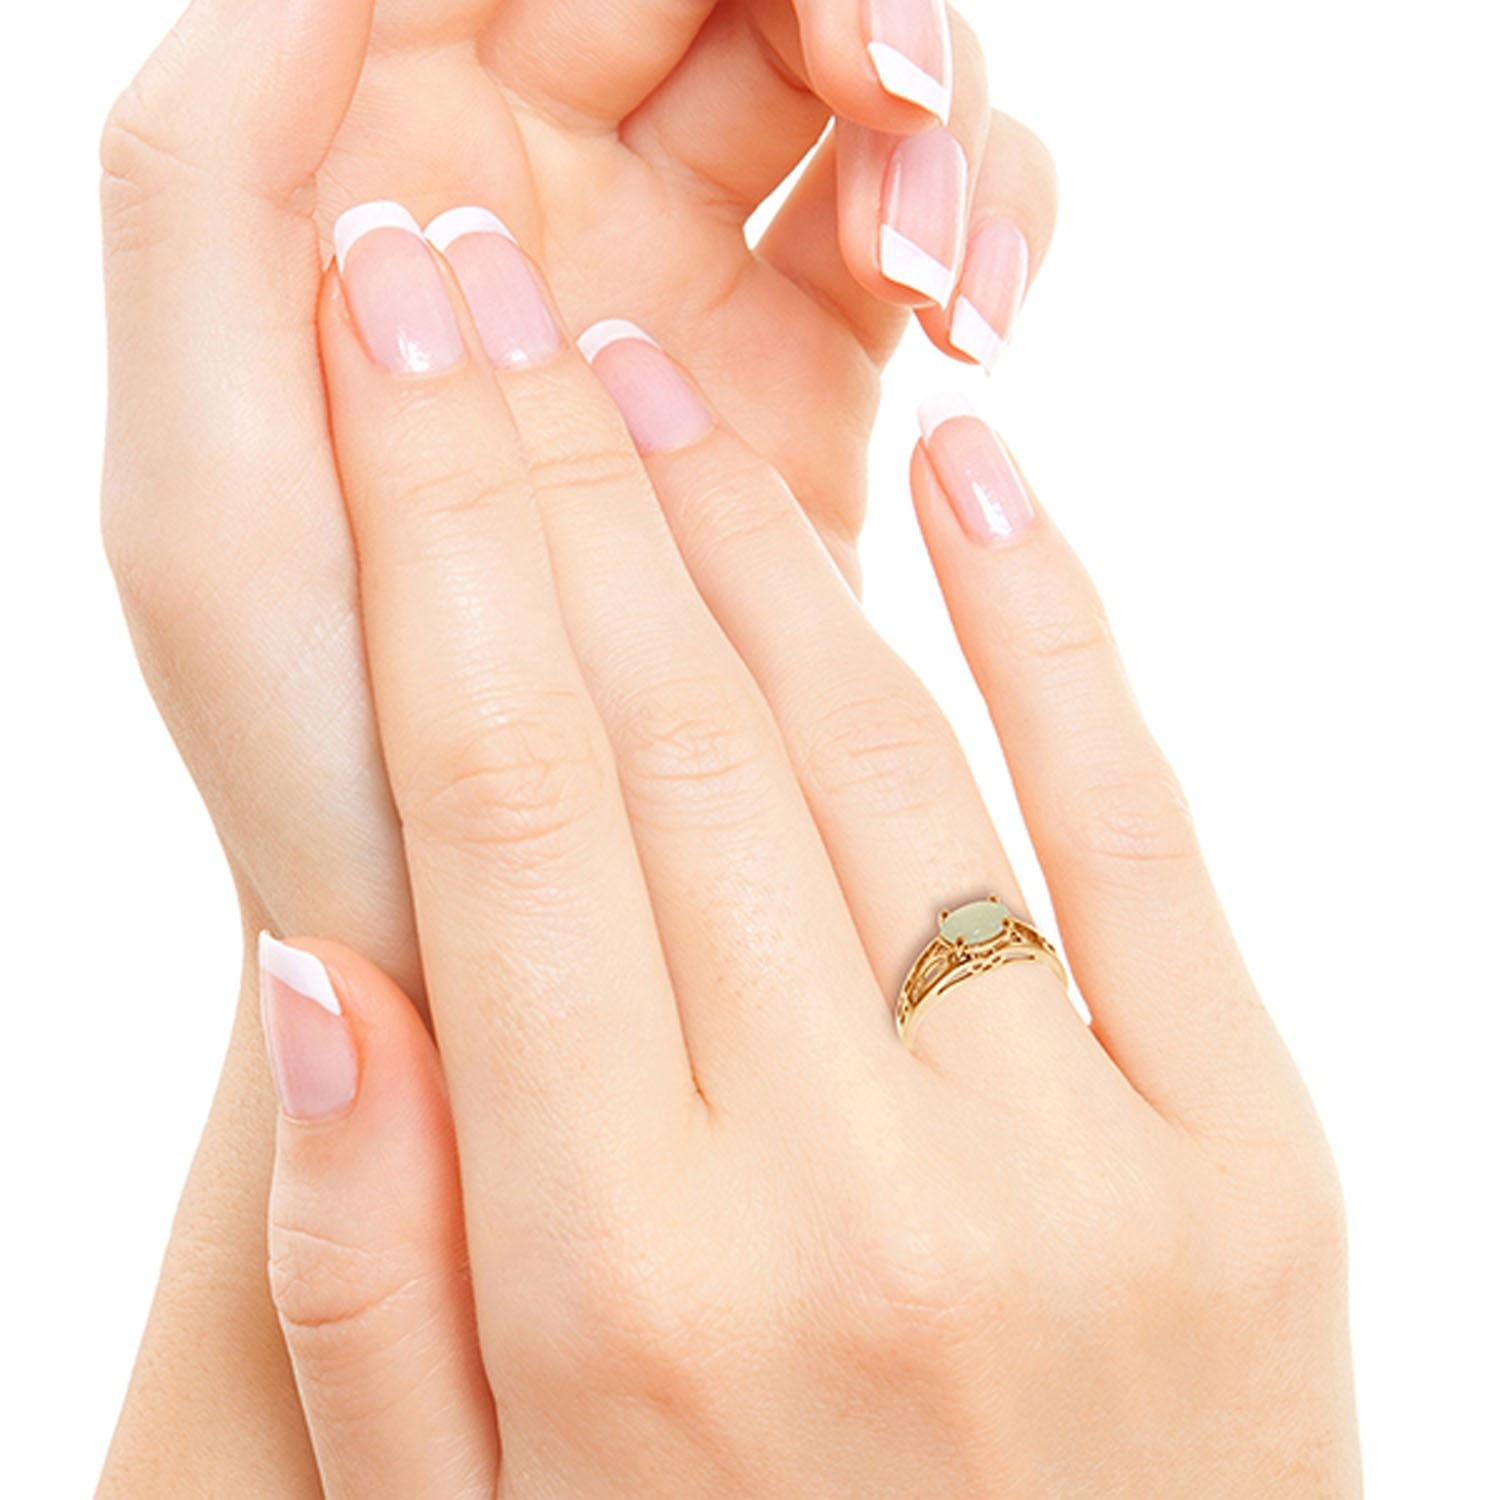 ALARRI 14K Solid Rose Gold Filigree Ring w/ Natural Opal With Ring Size 10 by ALARRI (Image #5)